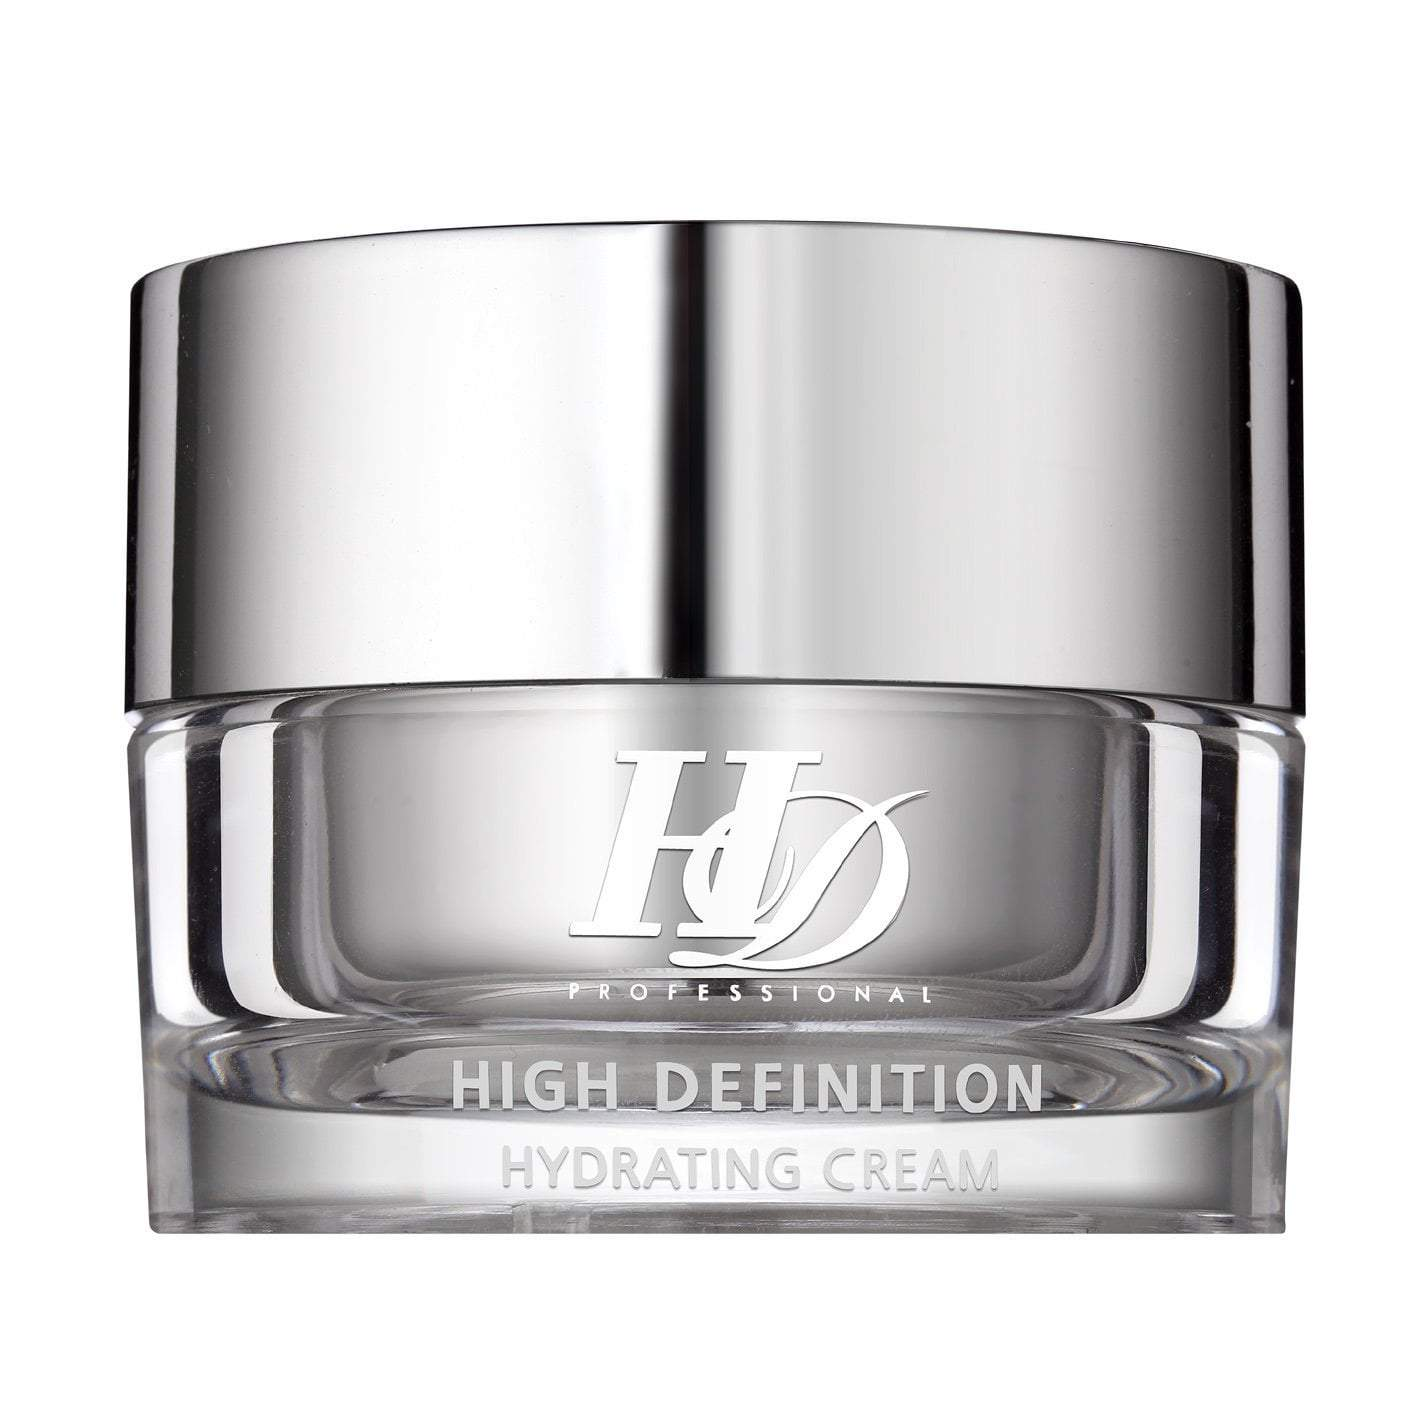 Fly Up HD Hydrating Cream - fly up beauty HD makeup professional make up kattong